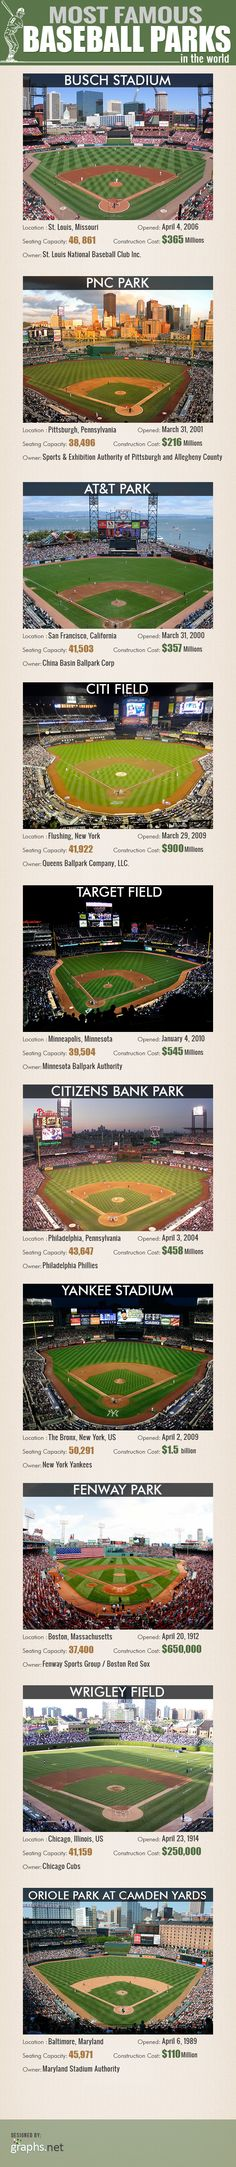 Most Famous Baseball Parks in the World - Infographic